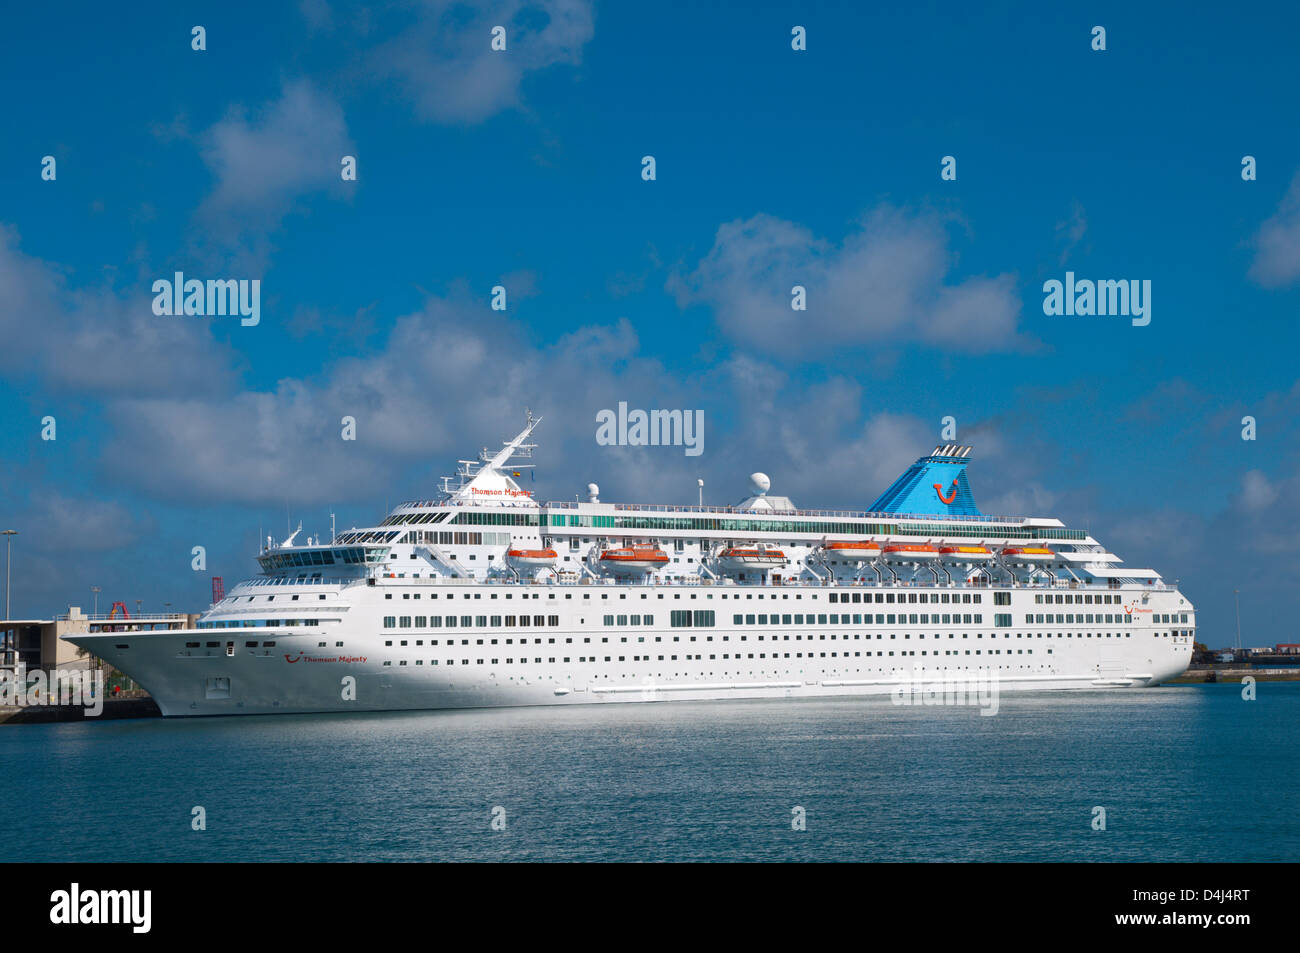 Passenger ferry at puerto la luz port las palmas de gran canaria city stock photo royalty free - Port of las palmas gran canaria ...